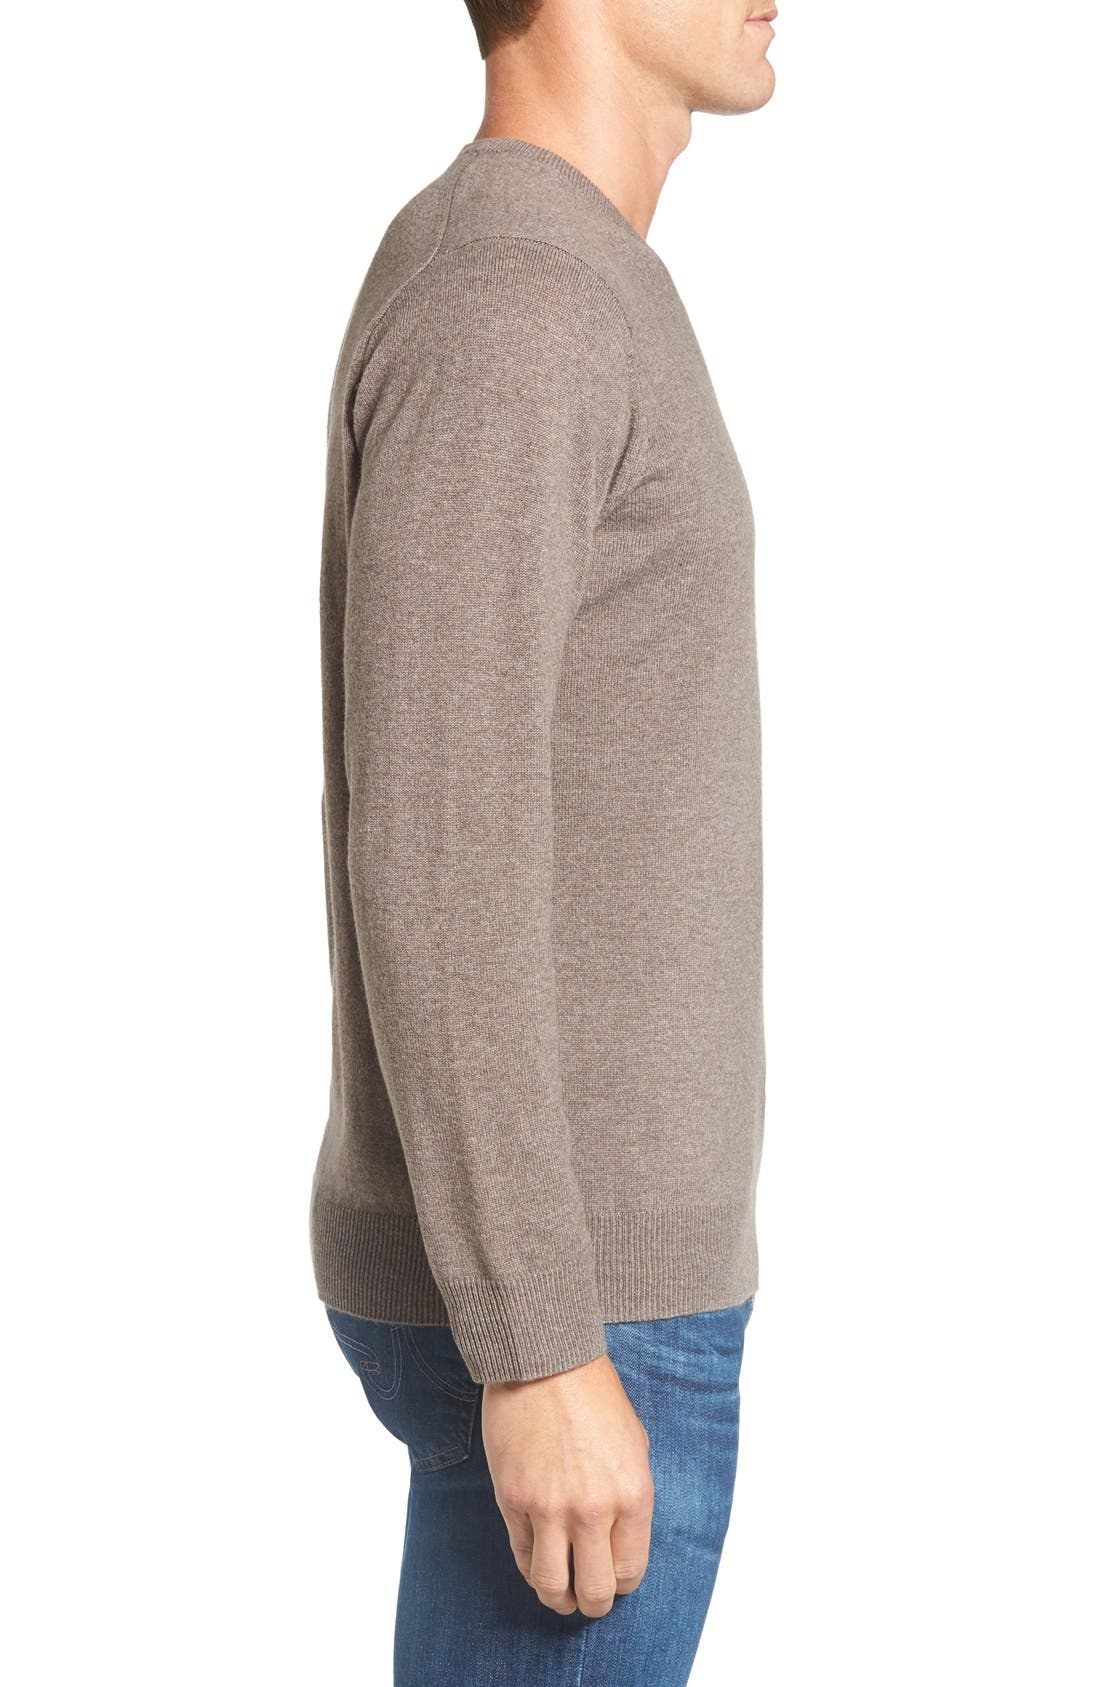 Alternate Image 3  - Rodd & Gunn 'Inchbonnie' Wool & Cashmere V-Neck Sweater